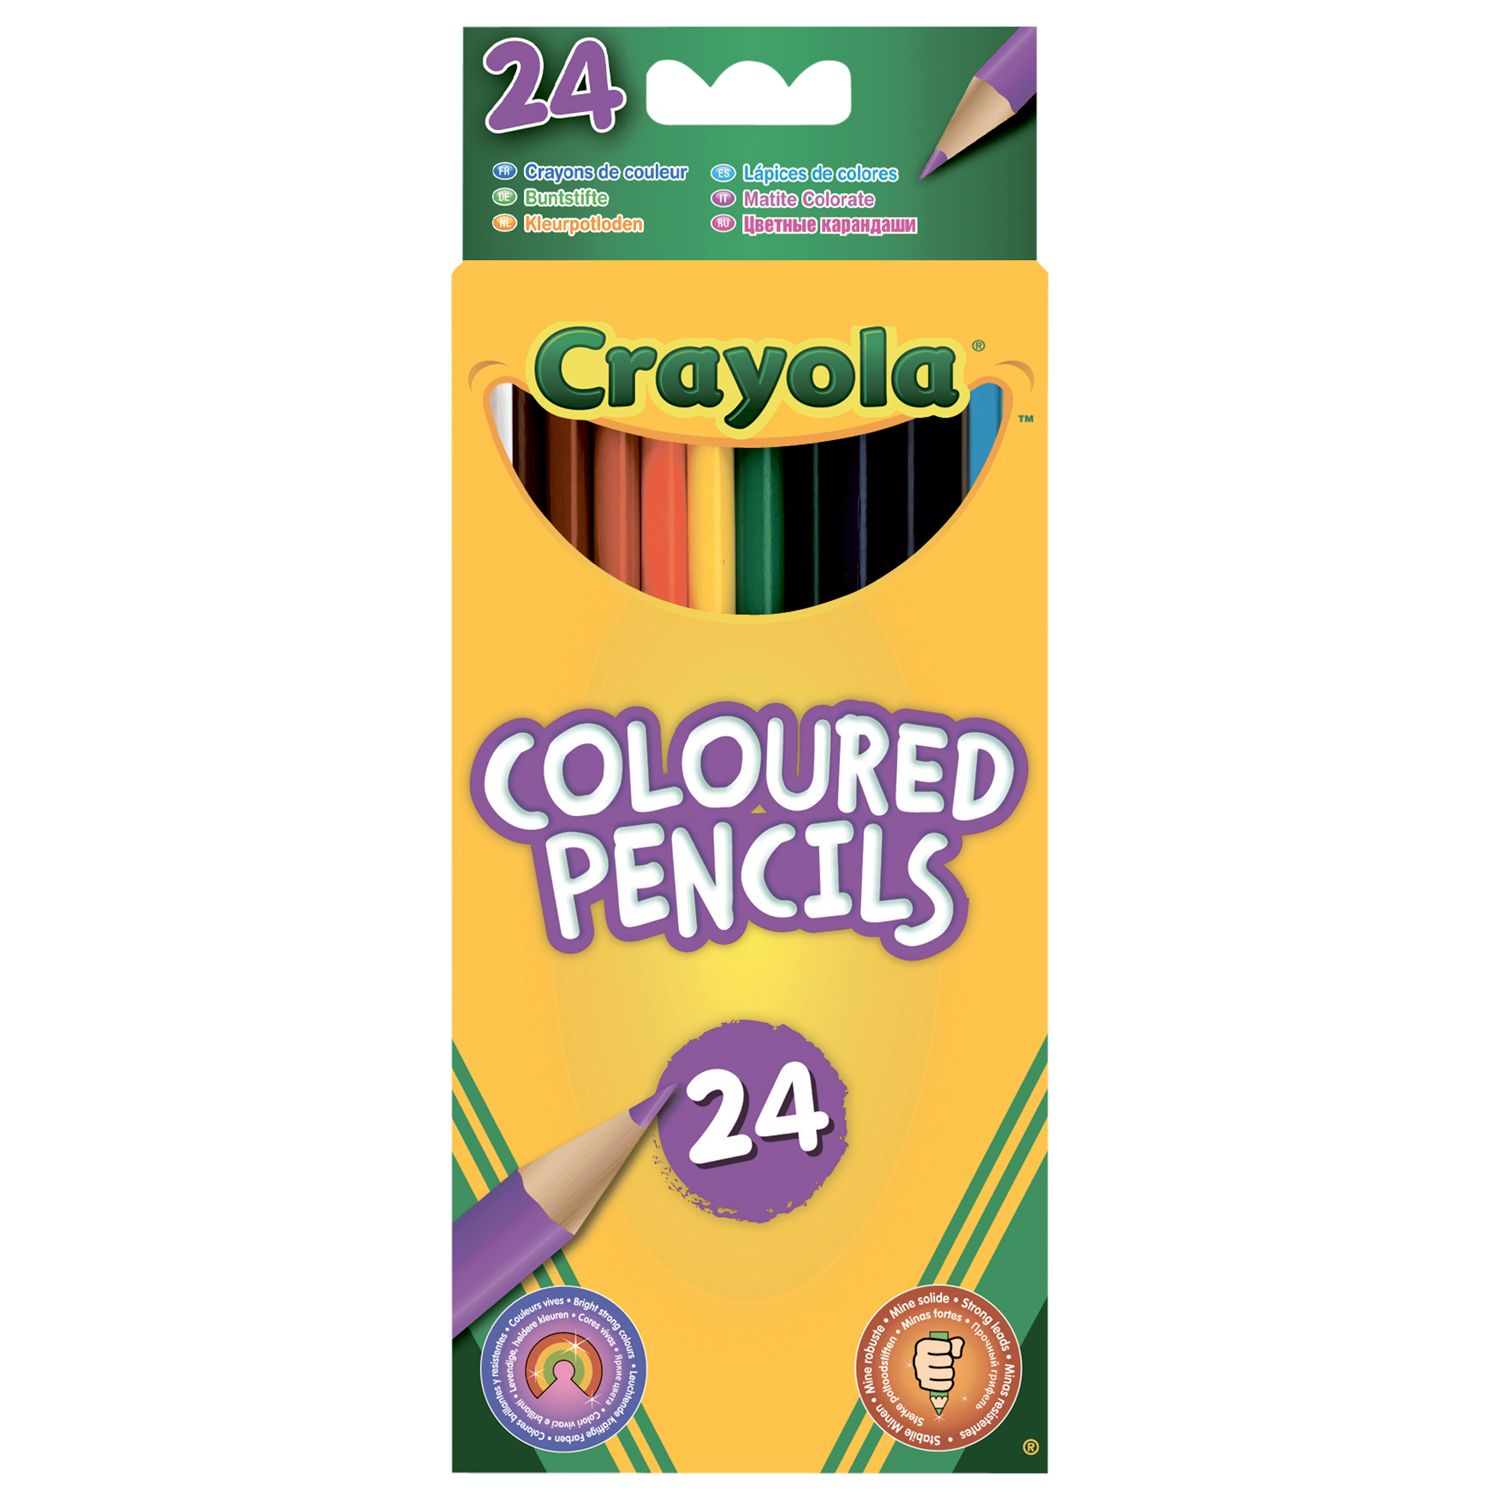 Crayola Colouring Pencils, Pack of 24